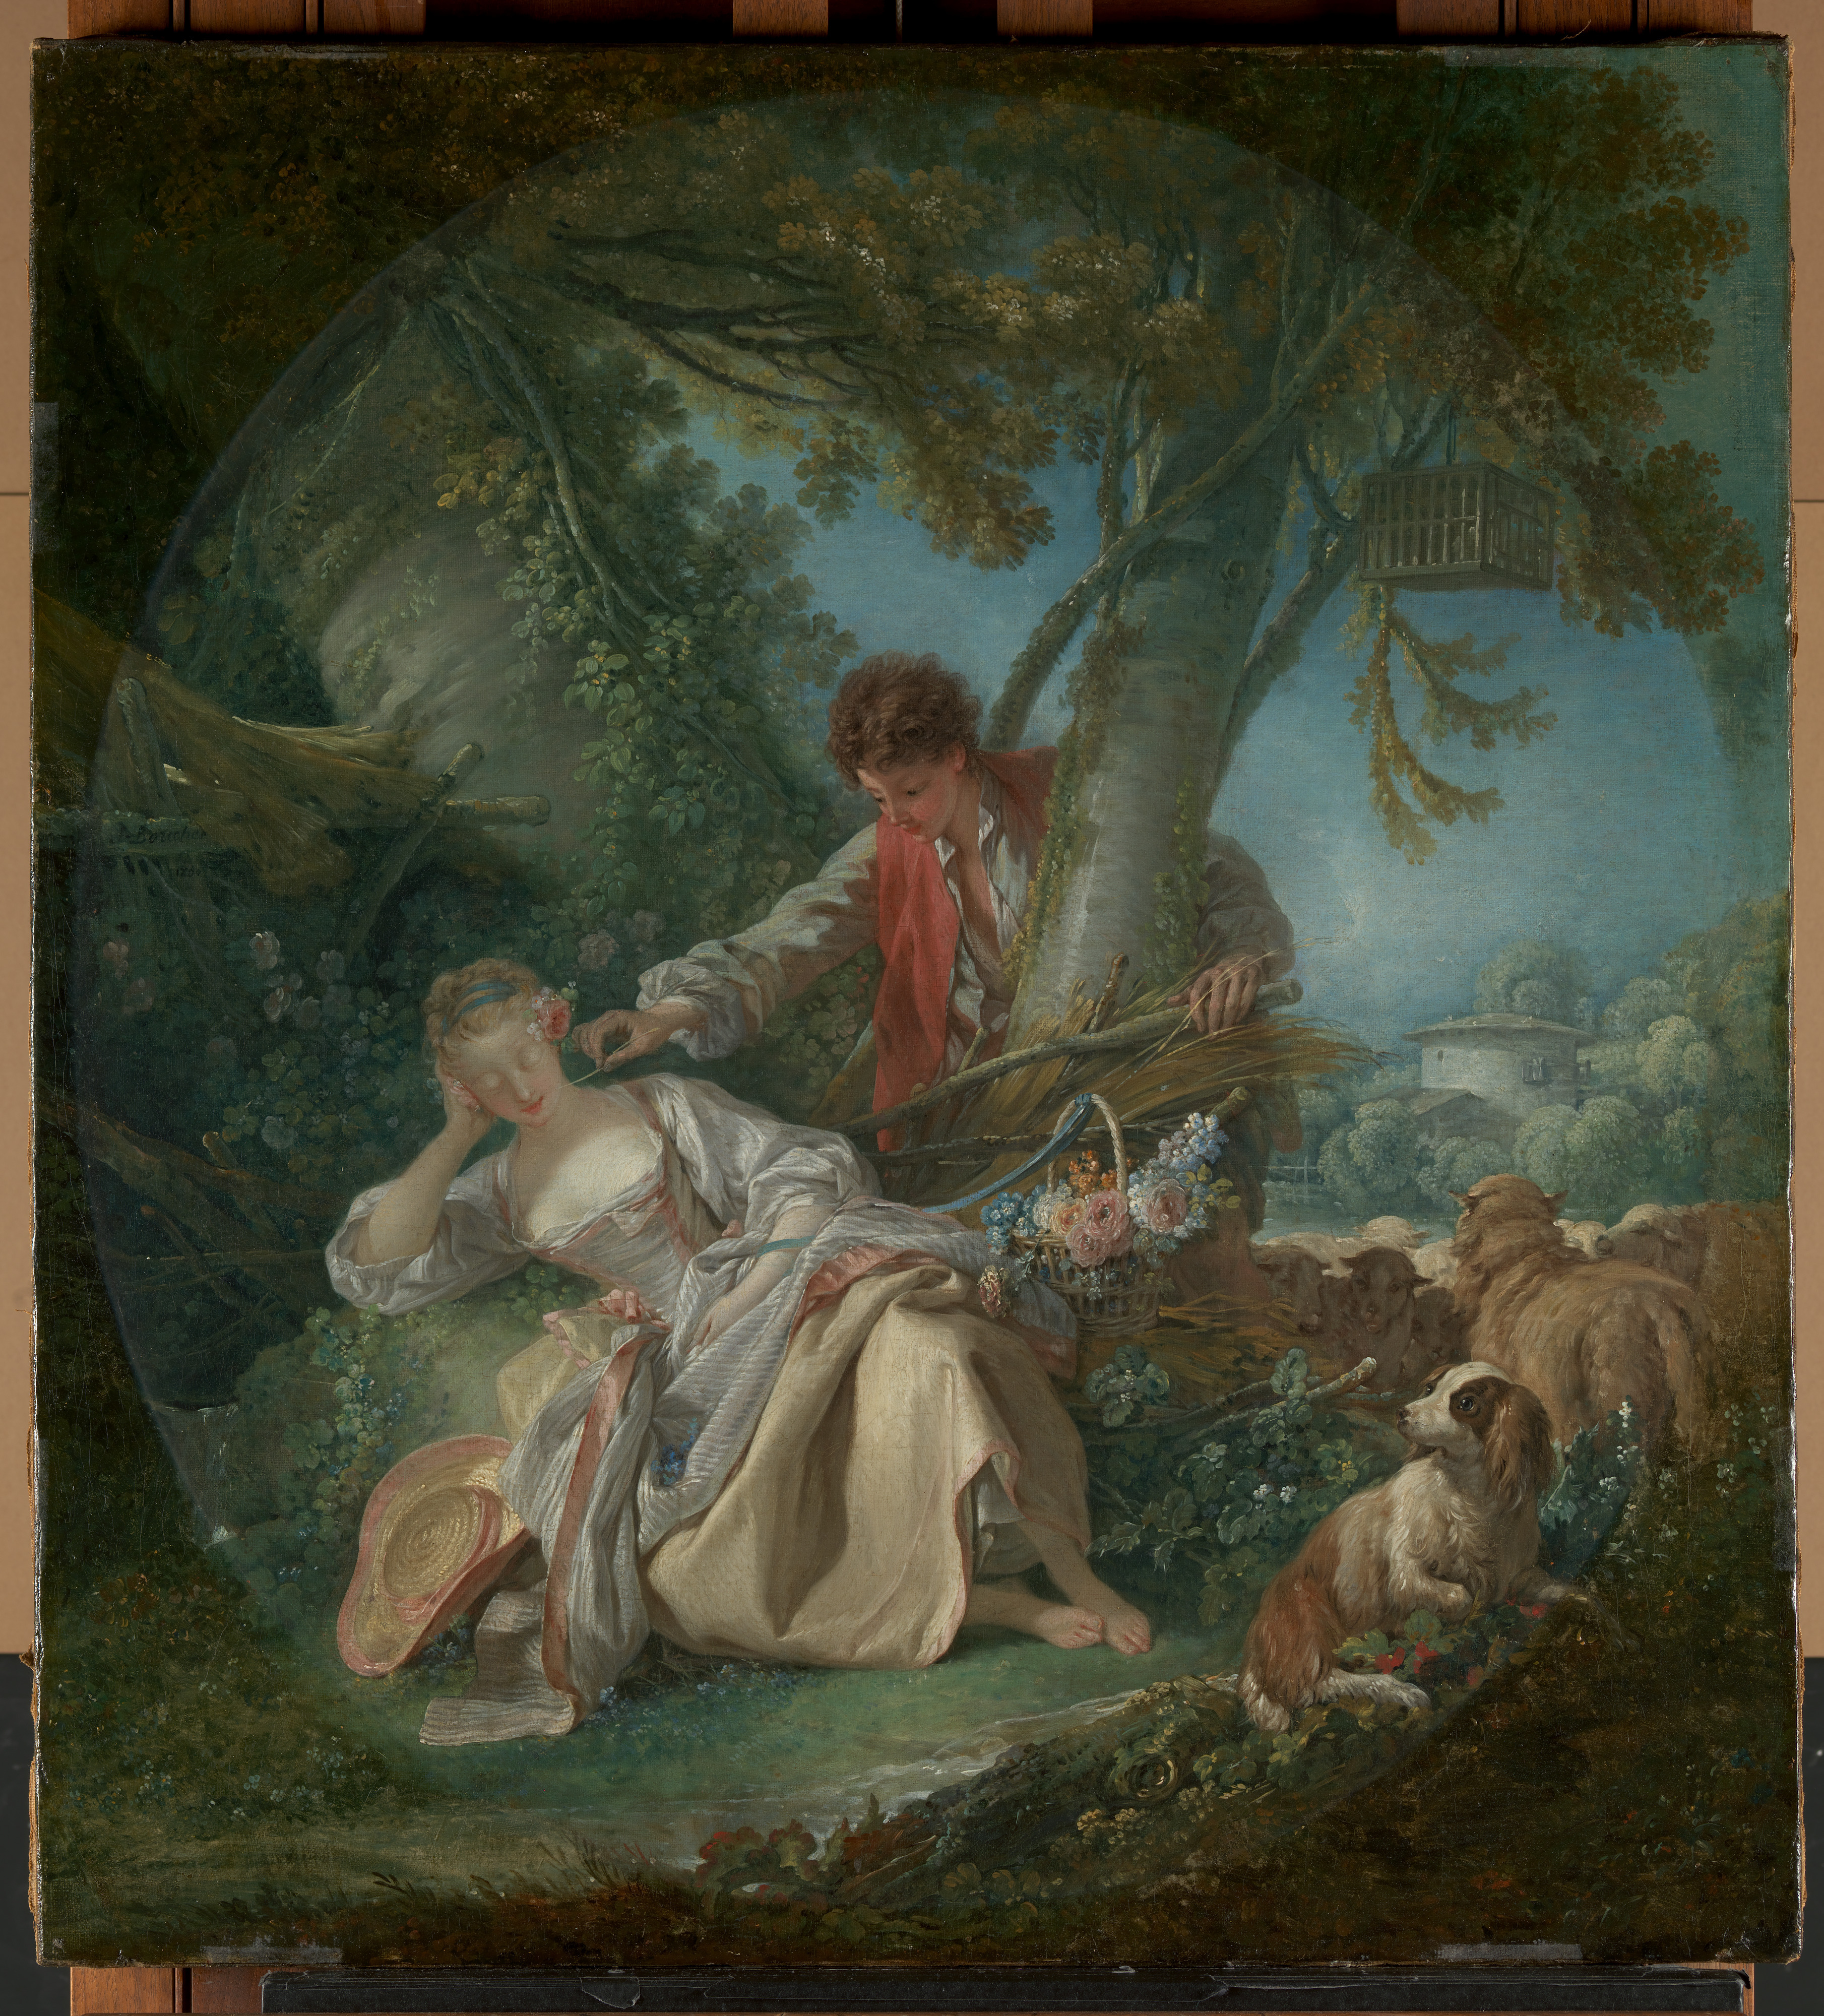 a peasant man touches a sleeping woman's face with a stalk of